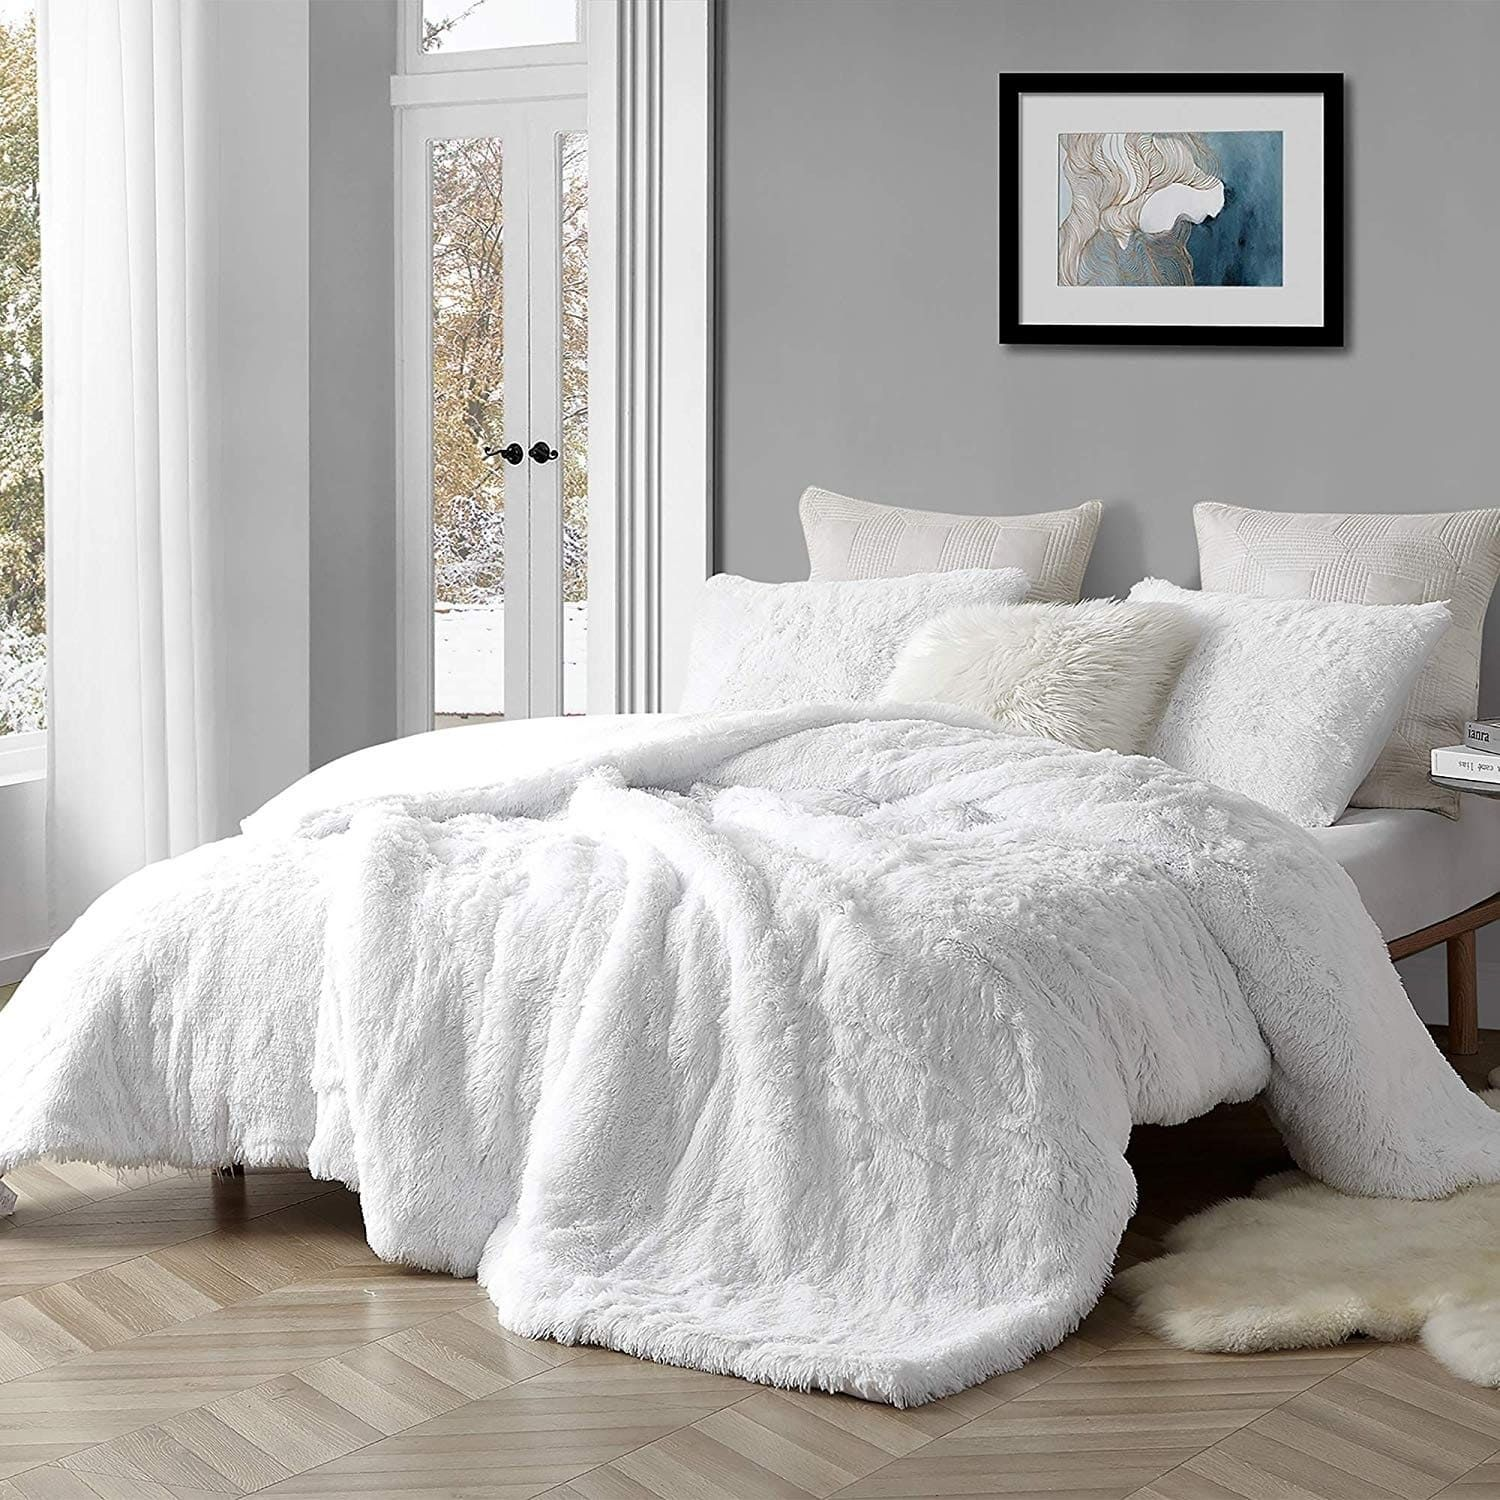 Overstock Com Online Shopping Bedding Furniture Electronics Jewelry Clothing More Duvet Comforters Bed Spreads King Comforter